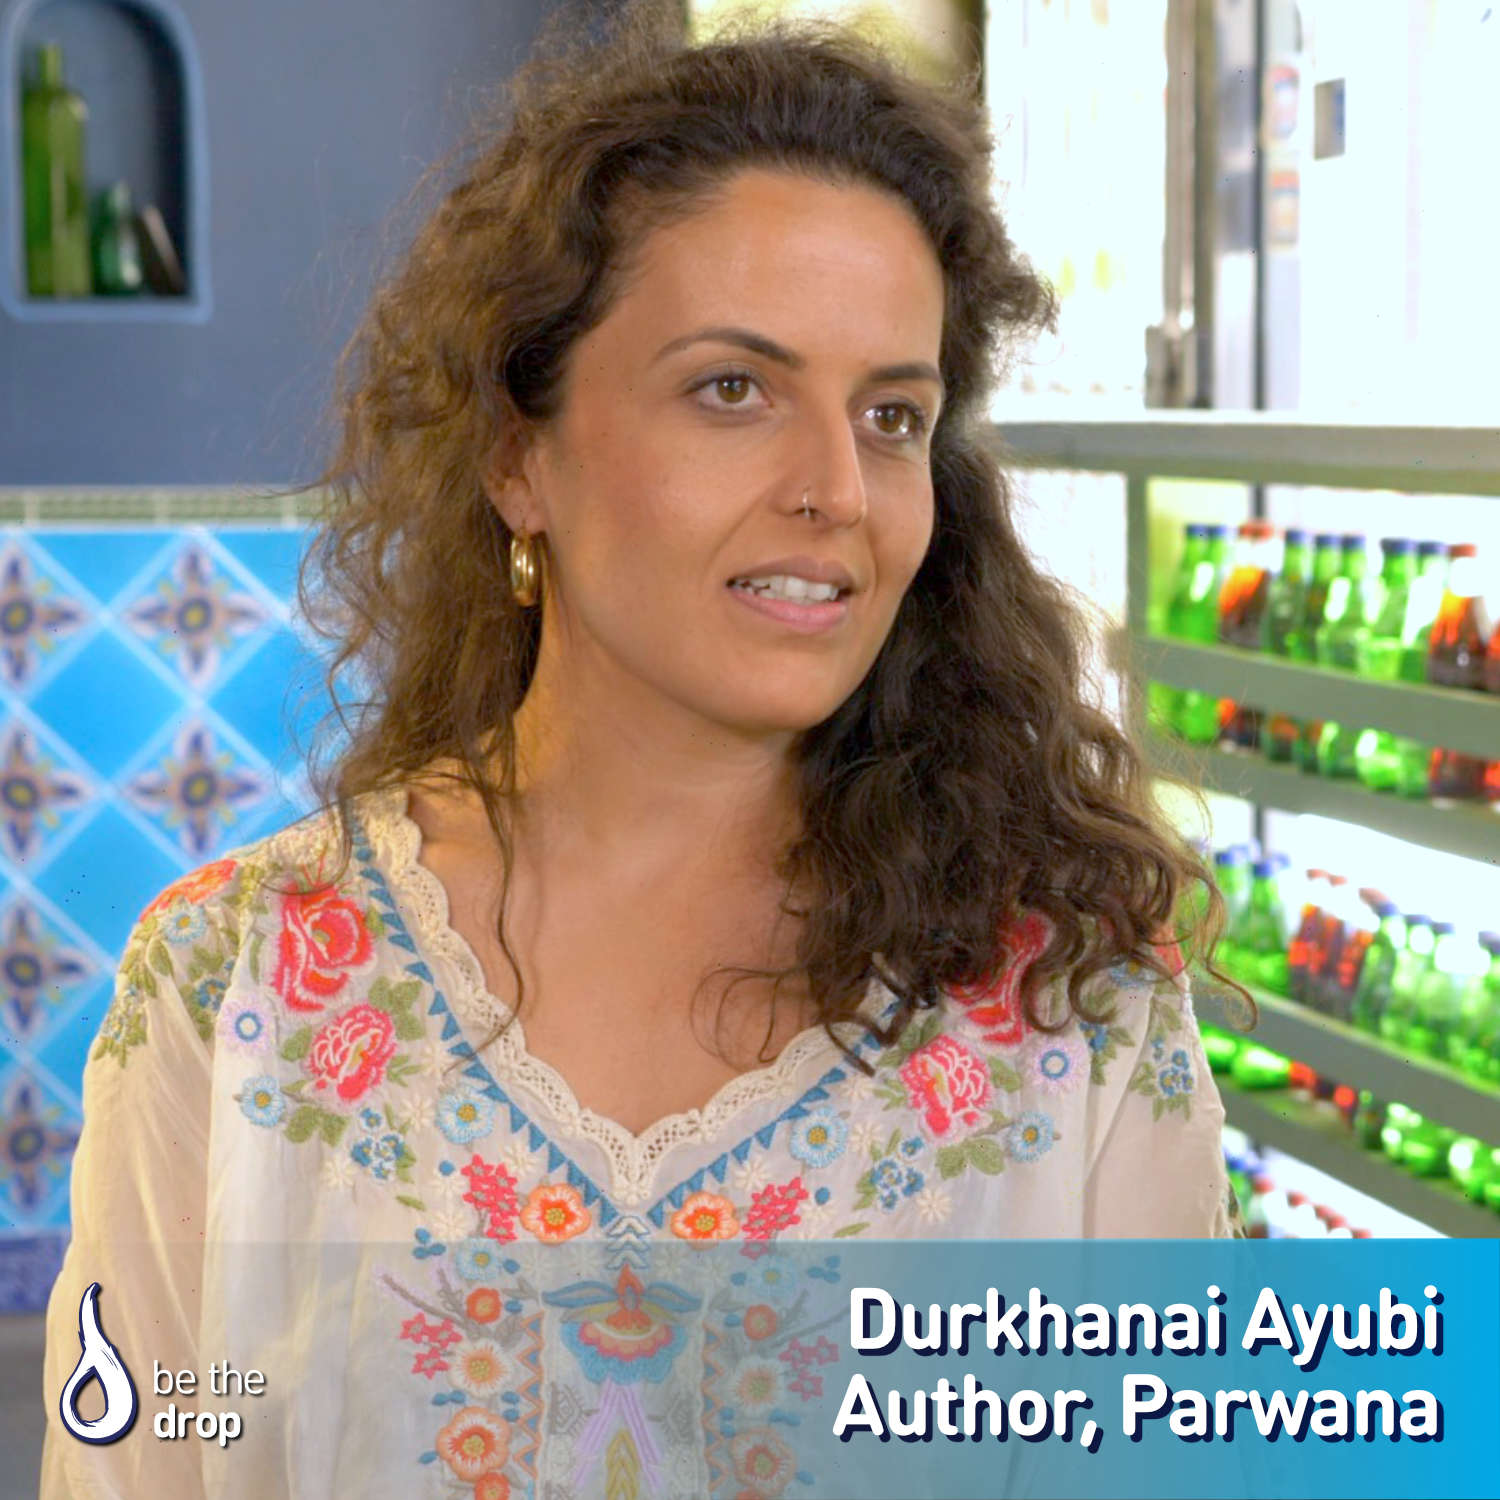 Shaping Humanity Through Storytelling with Durkhanai Ayubi [Podcast]